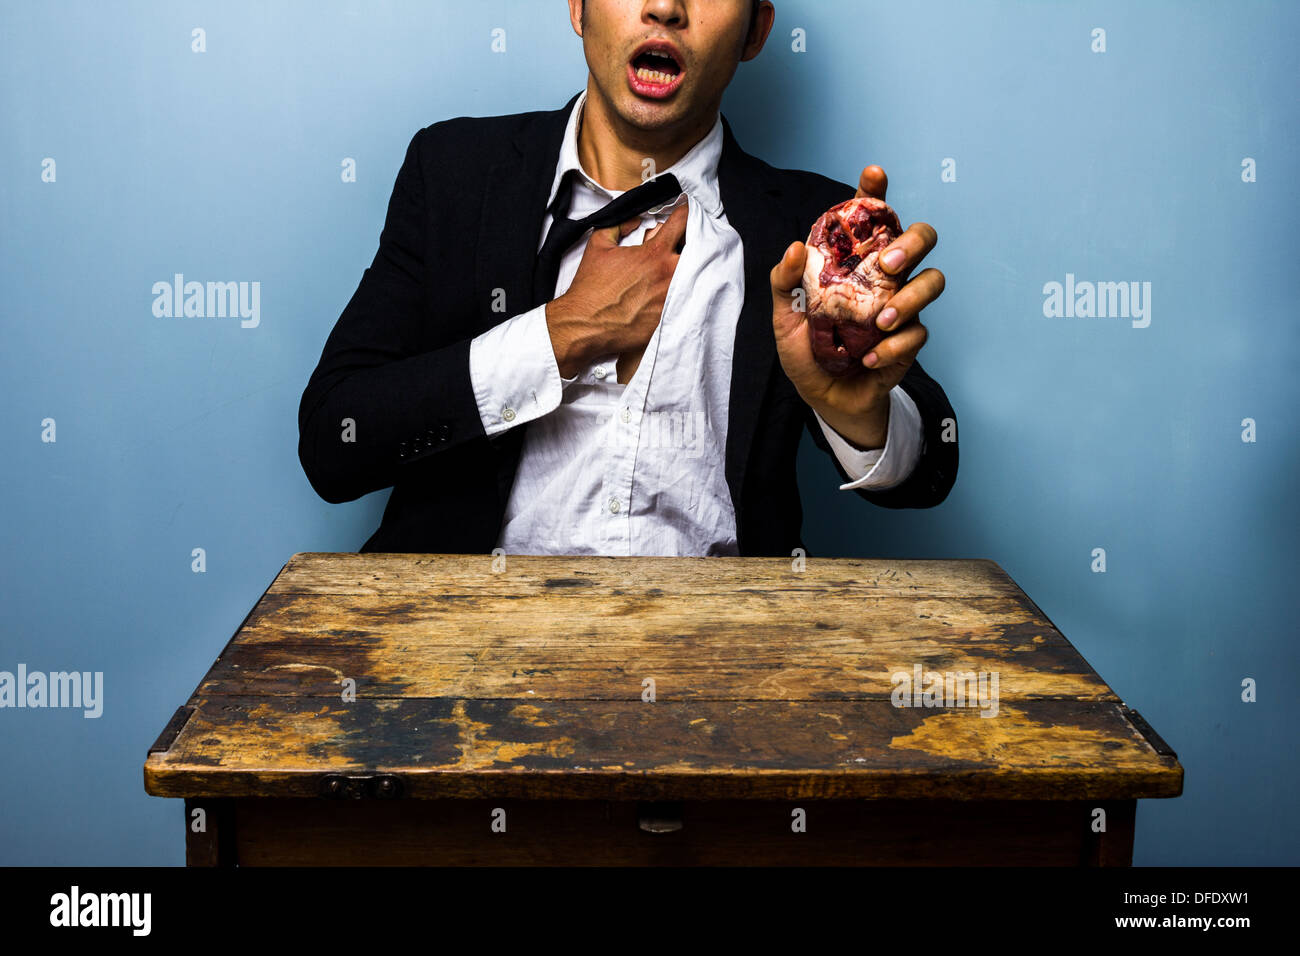 Young businessman is holding his chest in pain whilst holding a raw animal's heart in his other hand to symbolize a heart attack - Stock Image